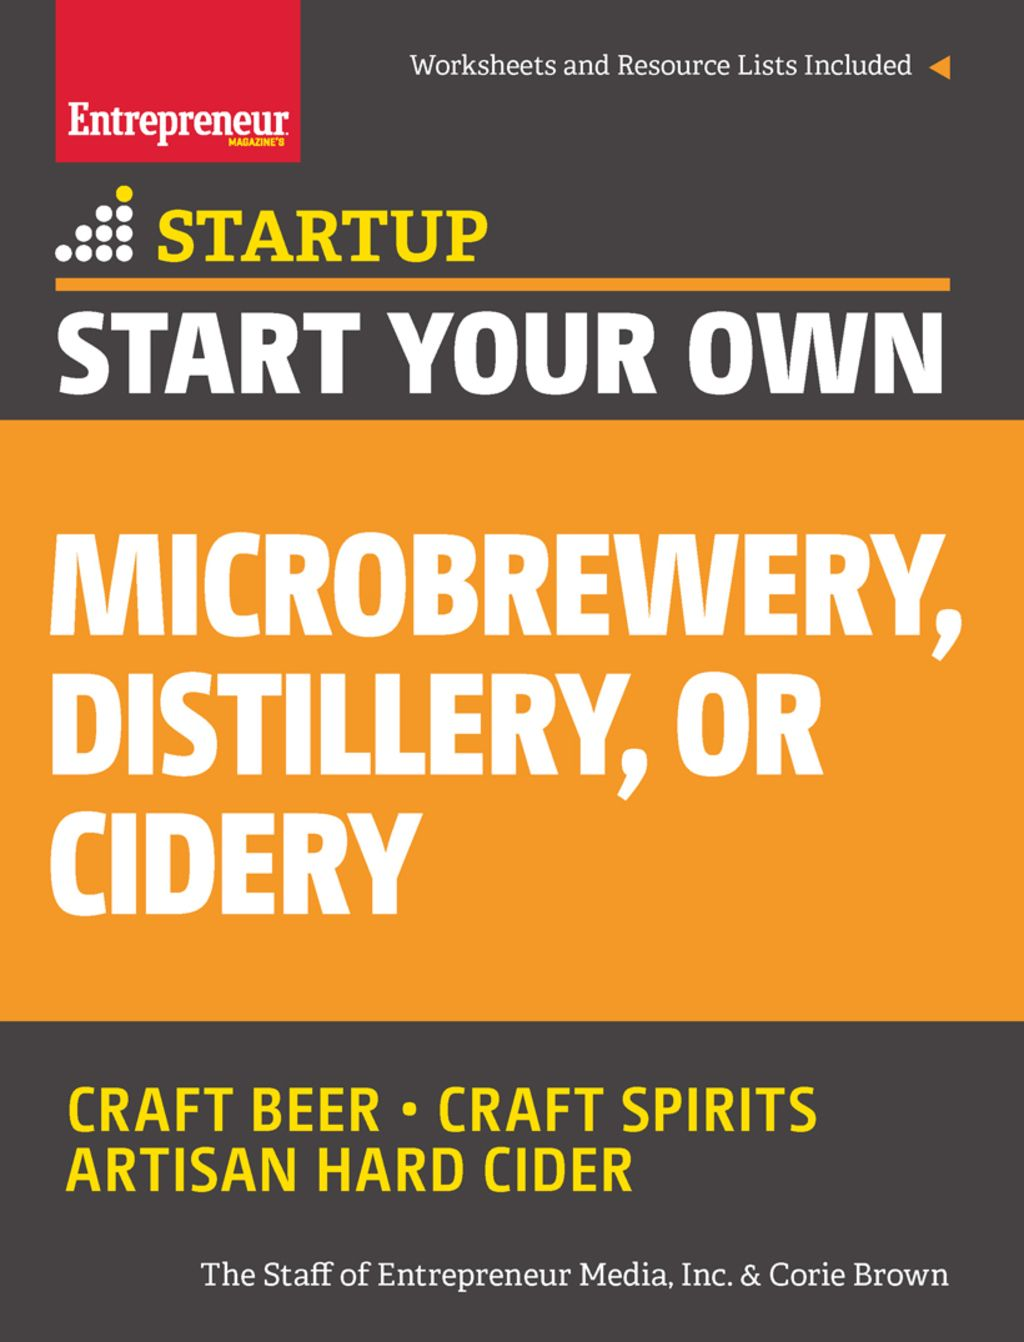 Start Your Own Microbrewery Distillery or Cidery (eBook